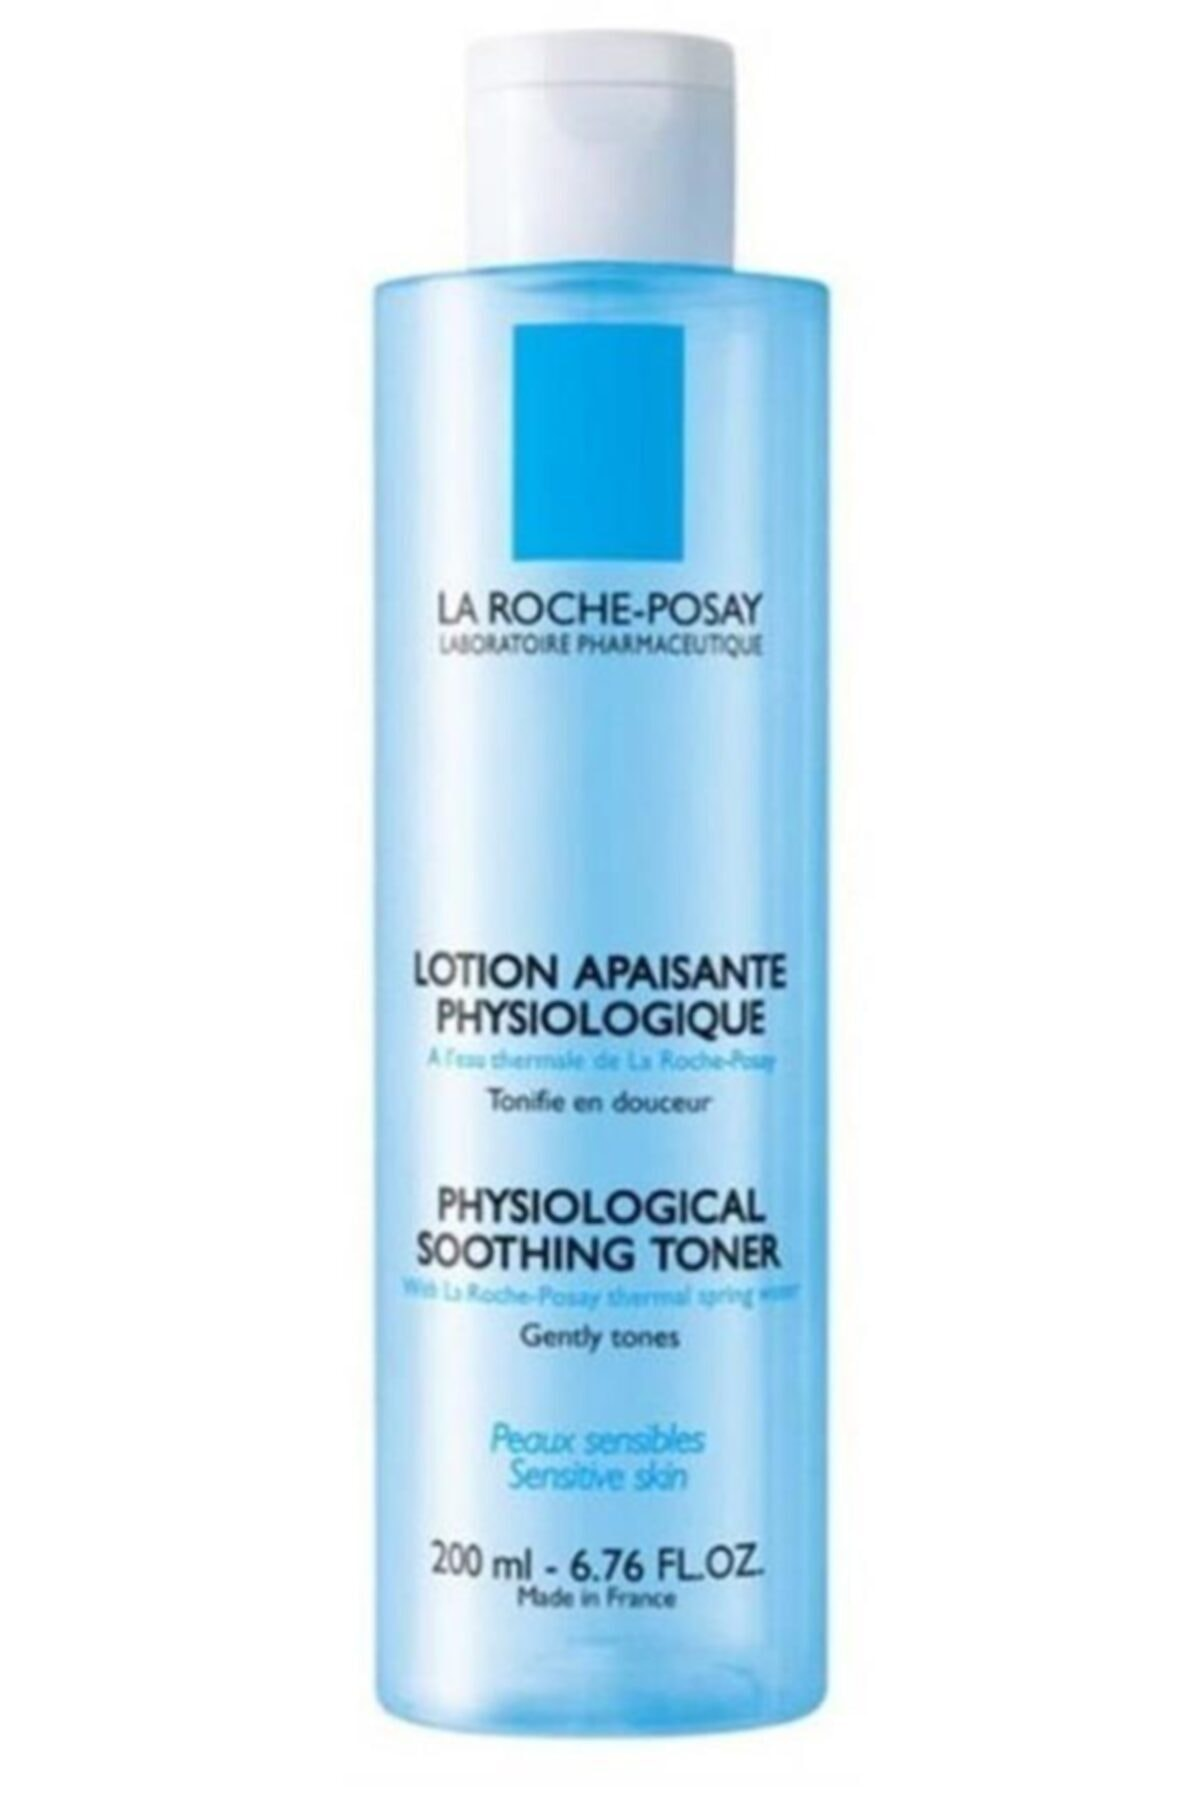 La Roche Posay La Roche-posay Lotion Apaisante Physiologic 200ml 1